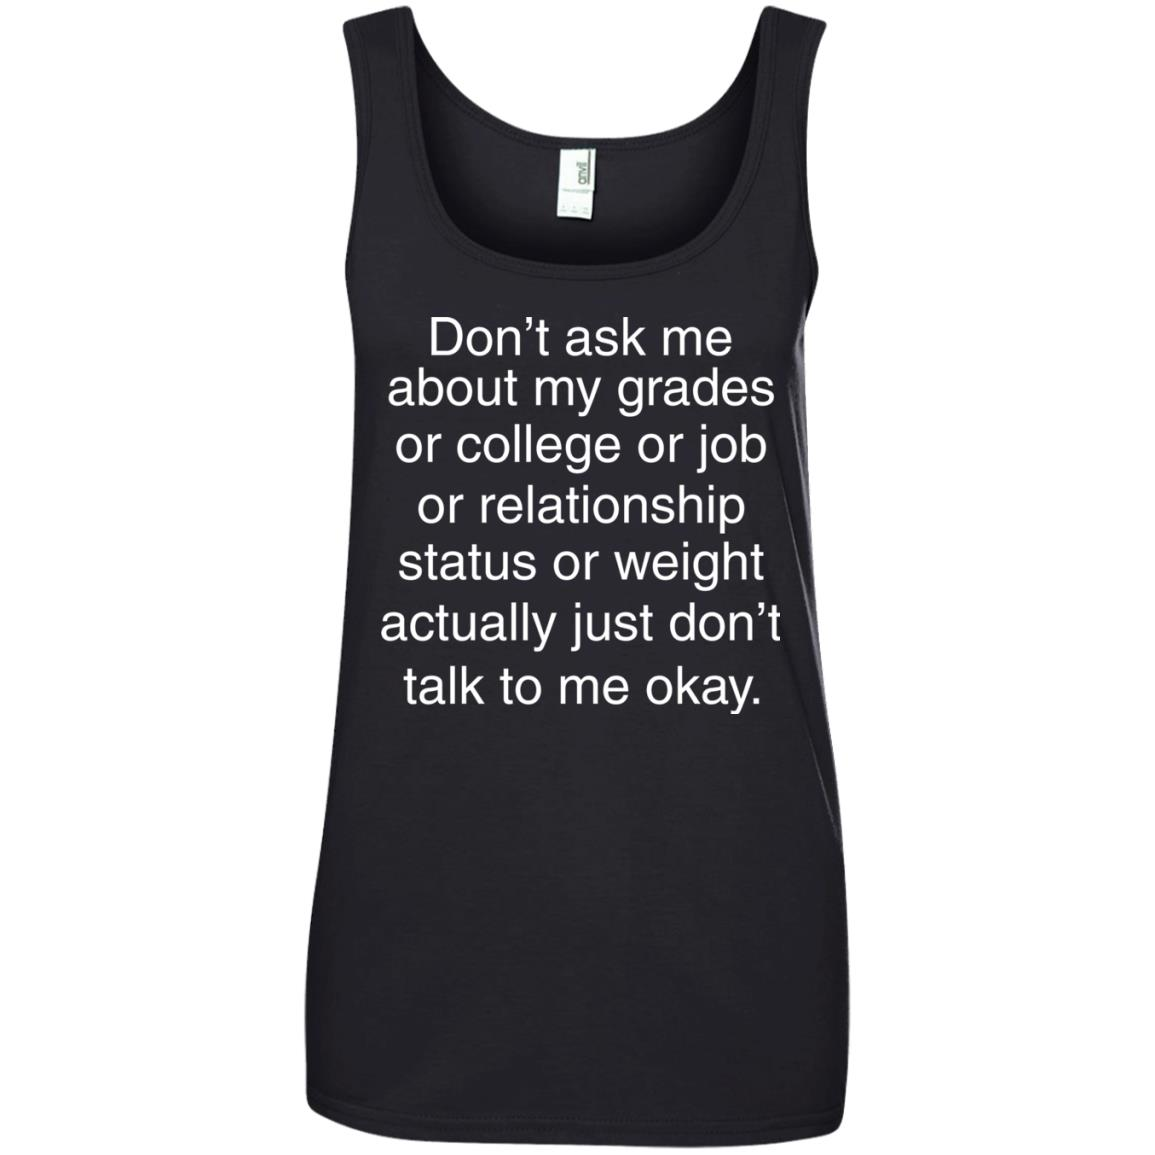 image 701px Don't ask me about my grades or college or job, just don't talk to me t shirt